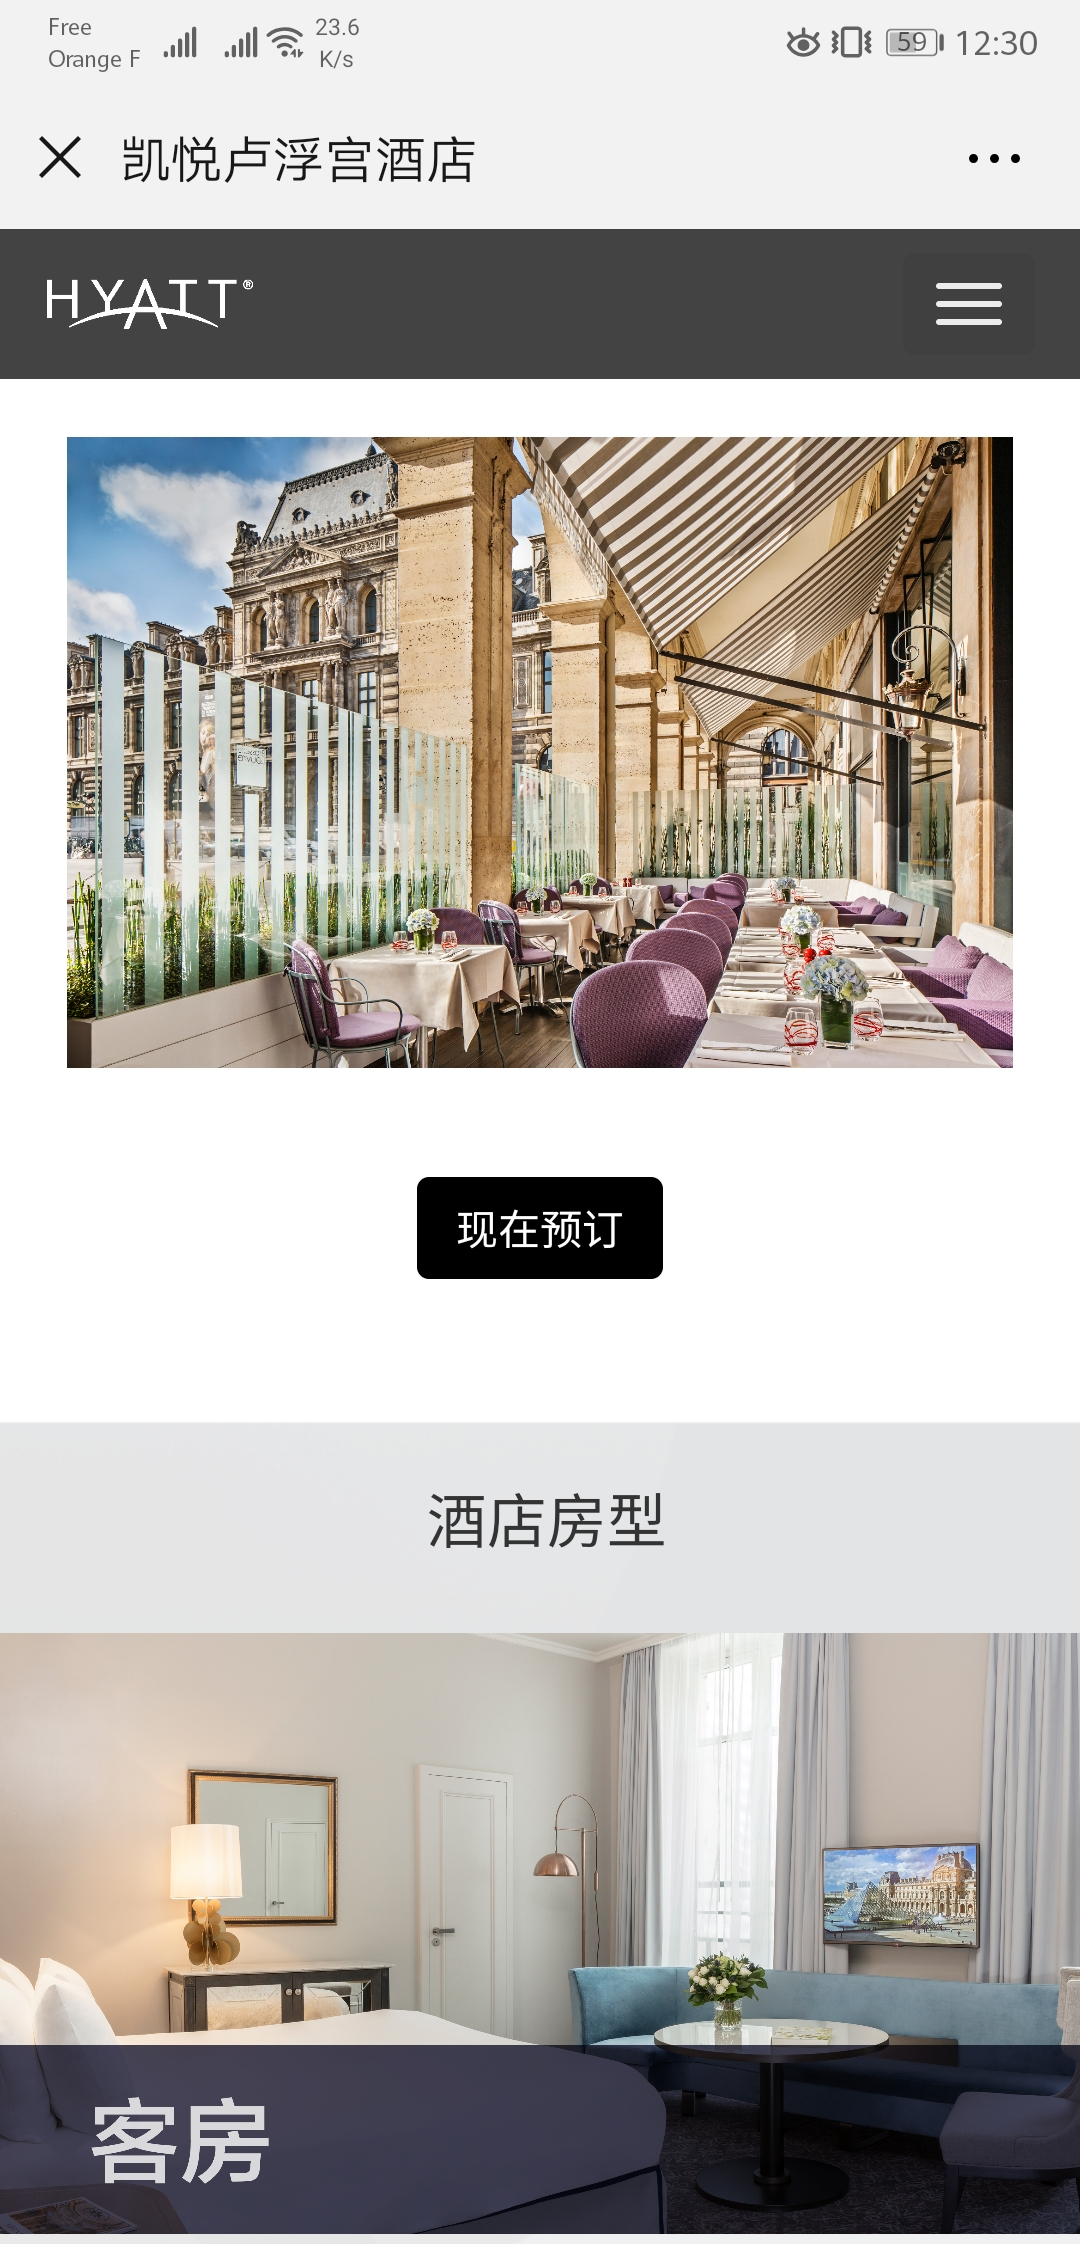 HYATT WeChat account